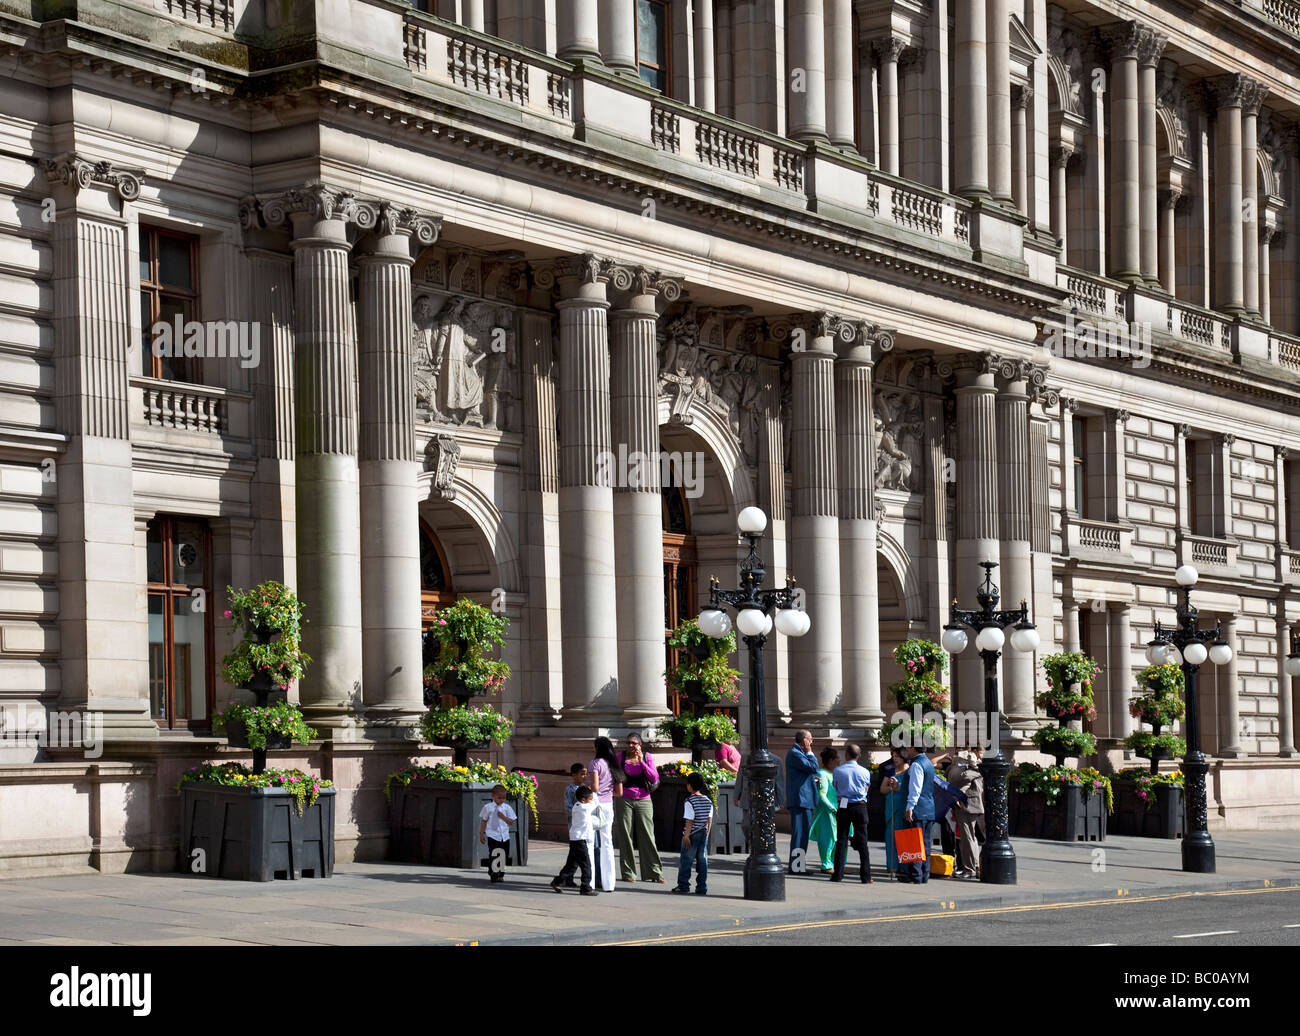 A group of Asian visitors outside Glasgow City Chambers in George Square, Glasgow. - Stock Image